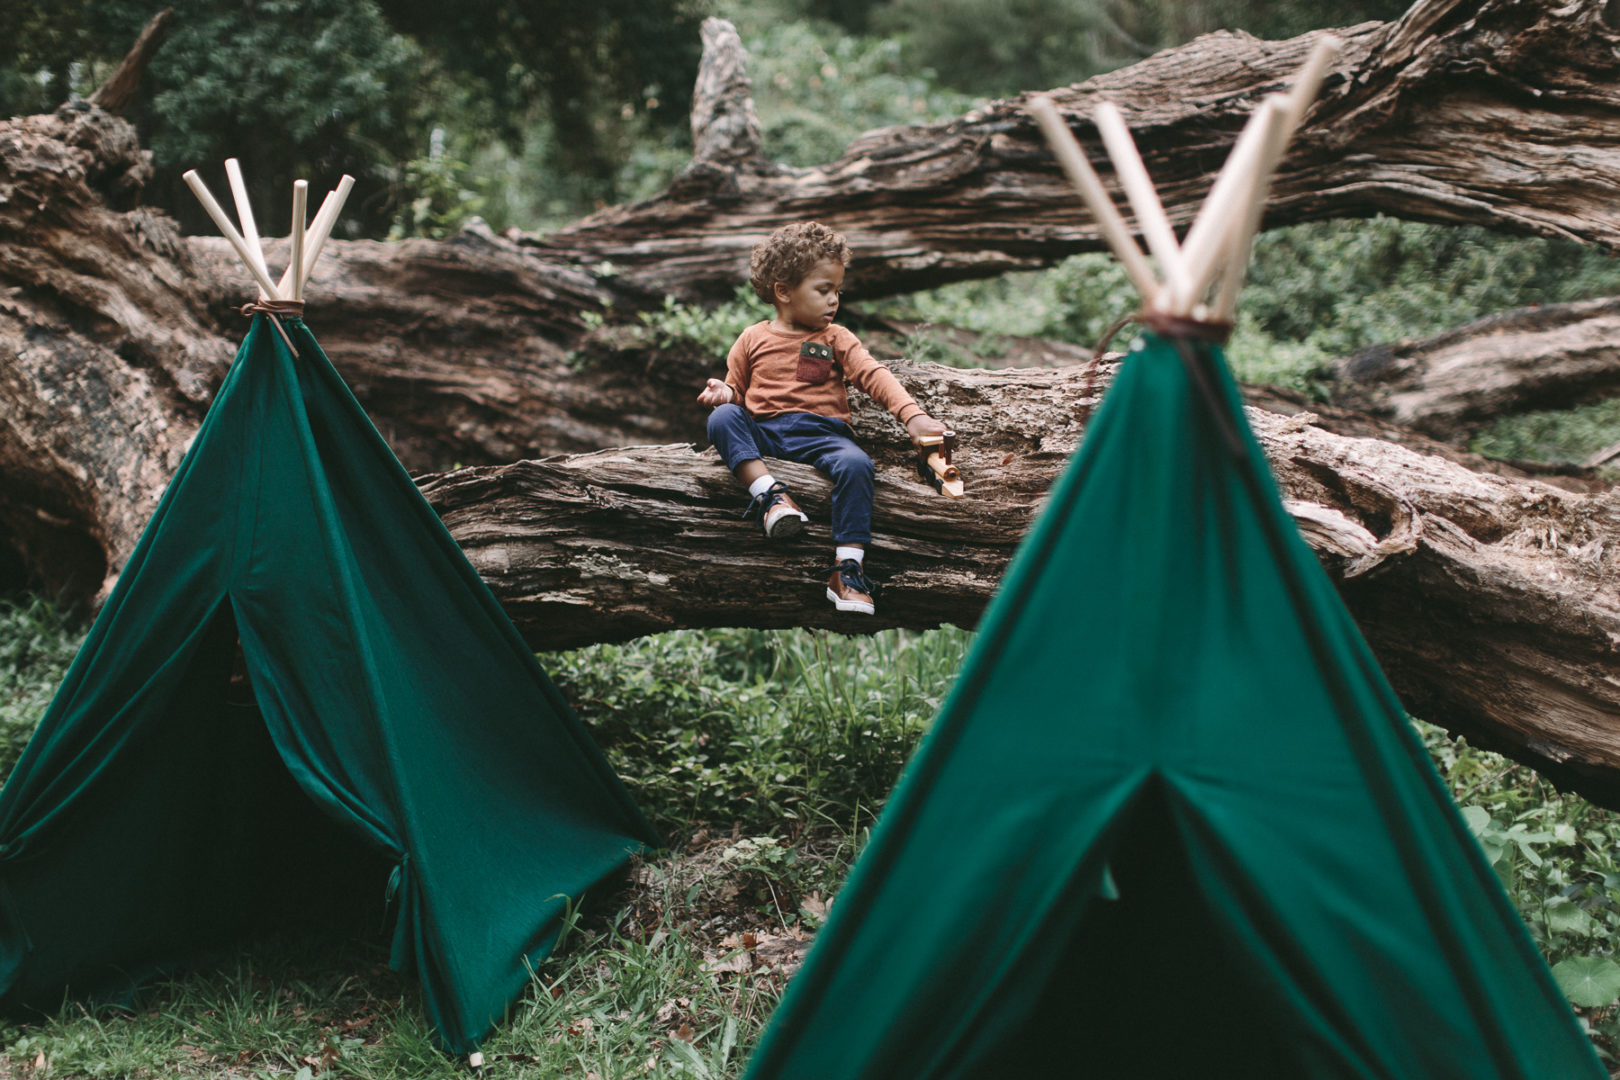 kids green teepee play tent forest